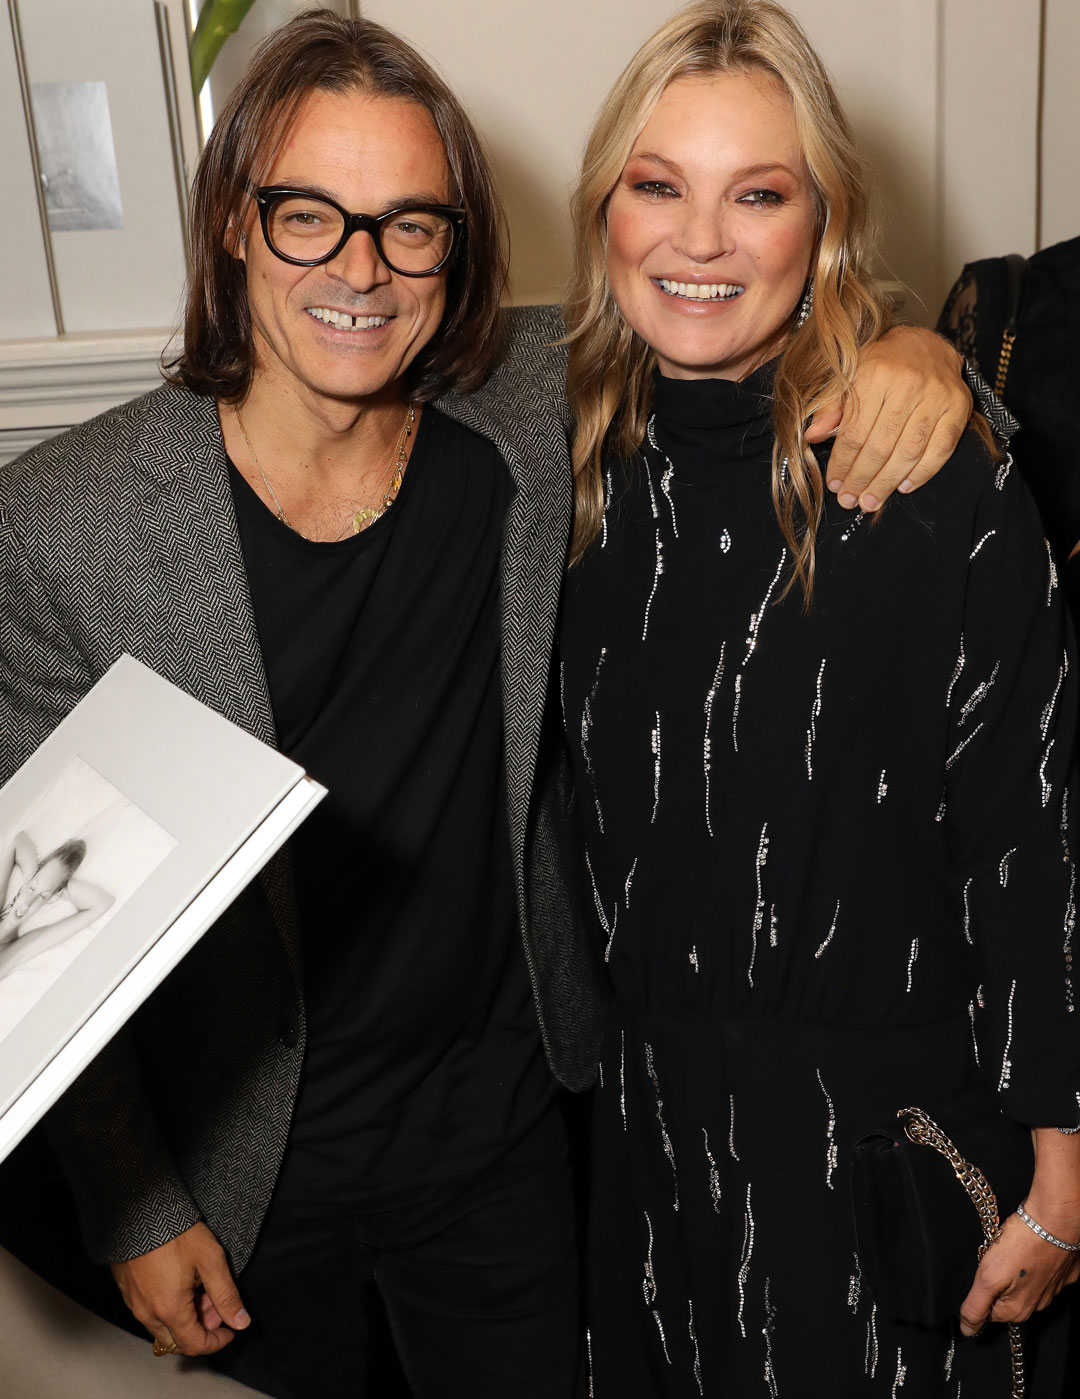 Photographer Mario Sorrenti and Kate Moss at Matches, 5 Carlos Place